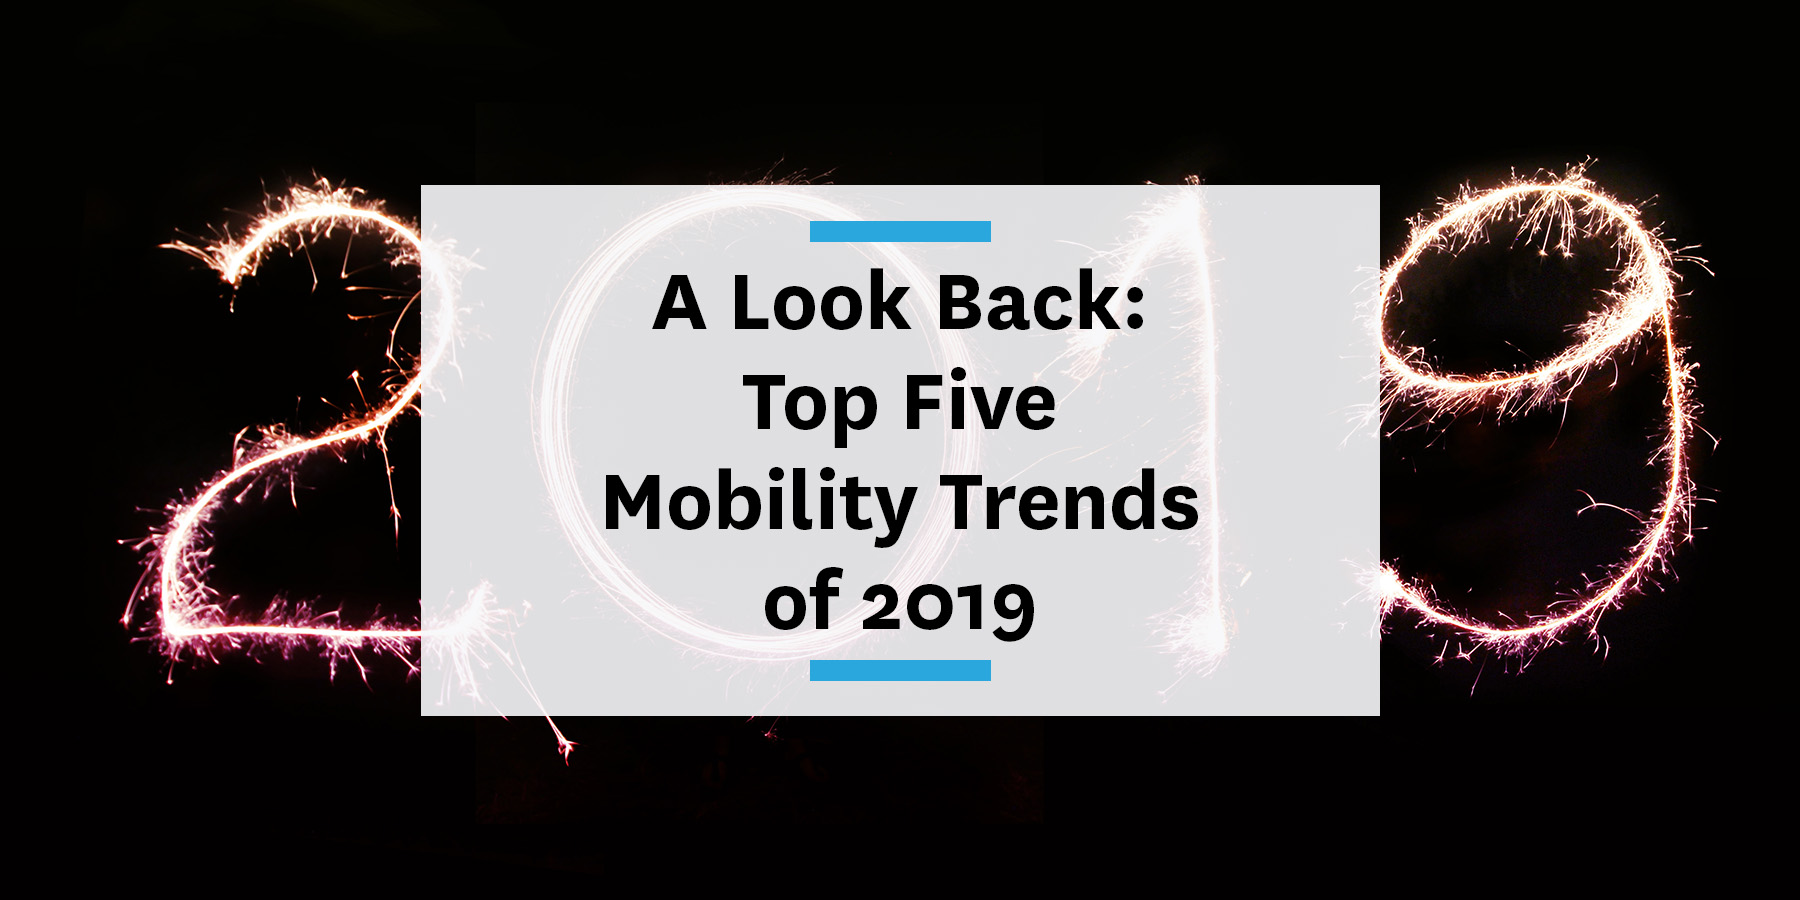 Top 5 Mobility Trends of 2019